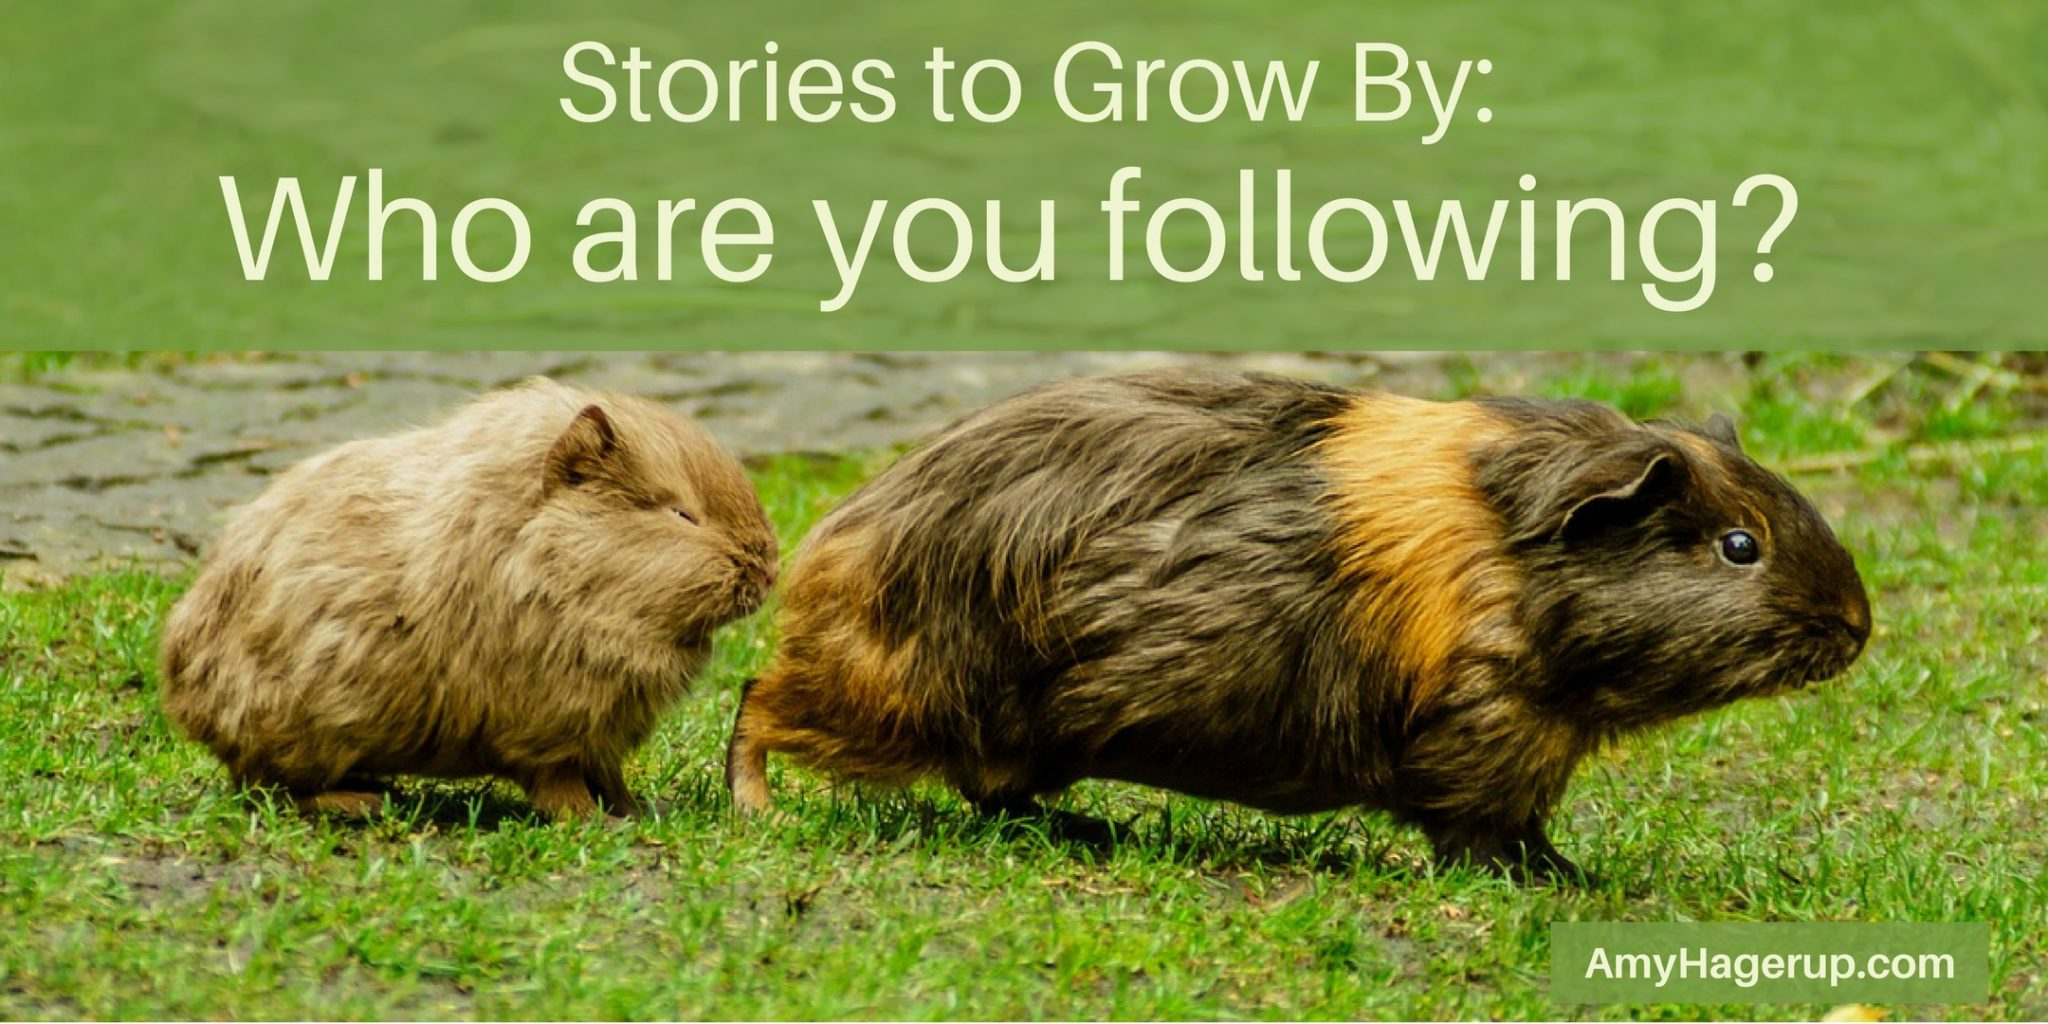 Stories to grow by - who are you following....